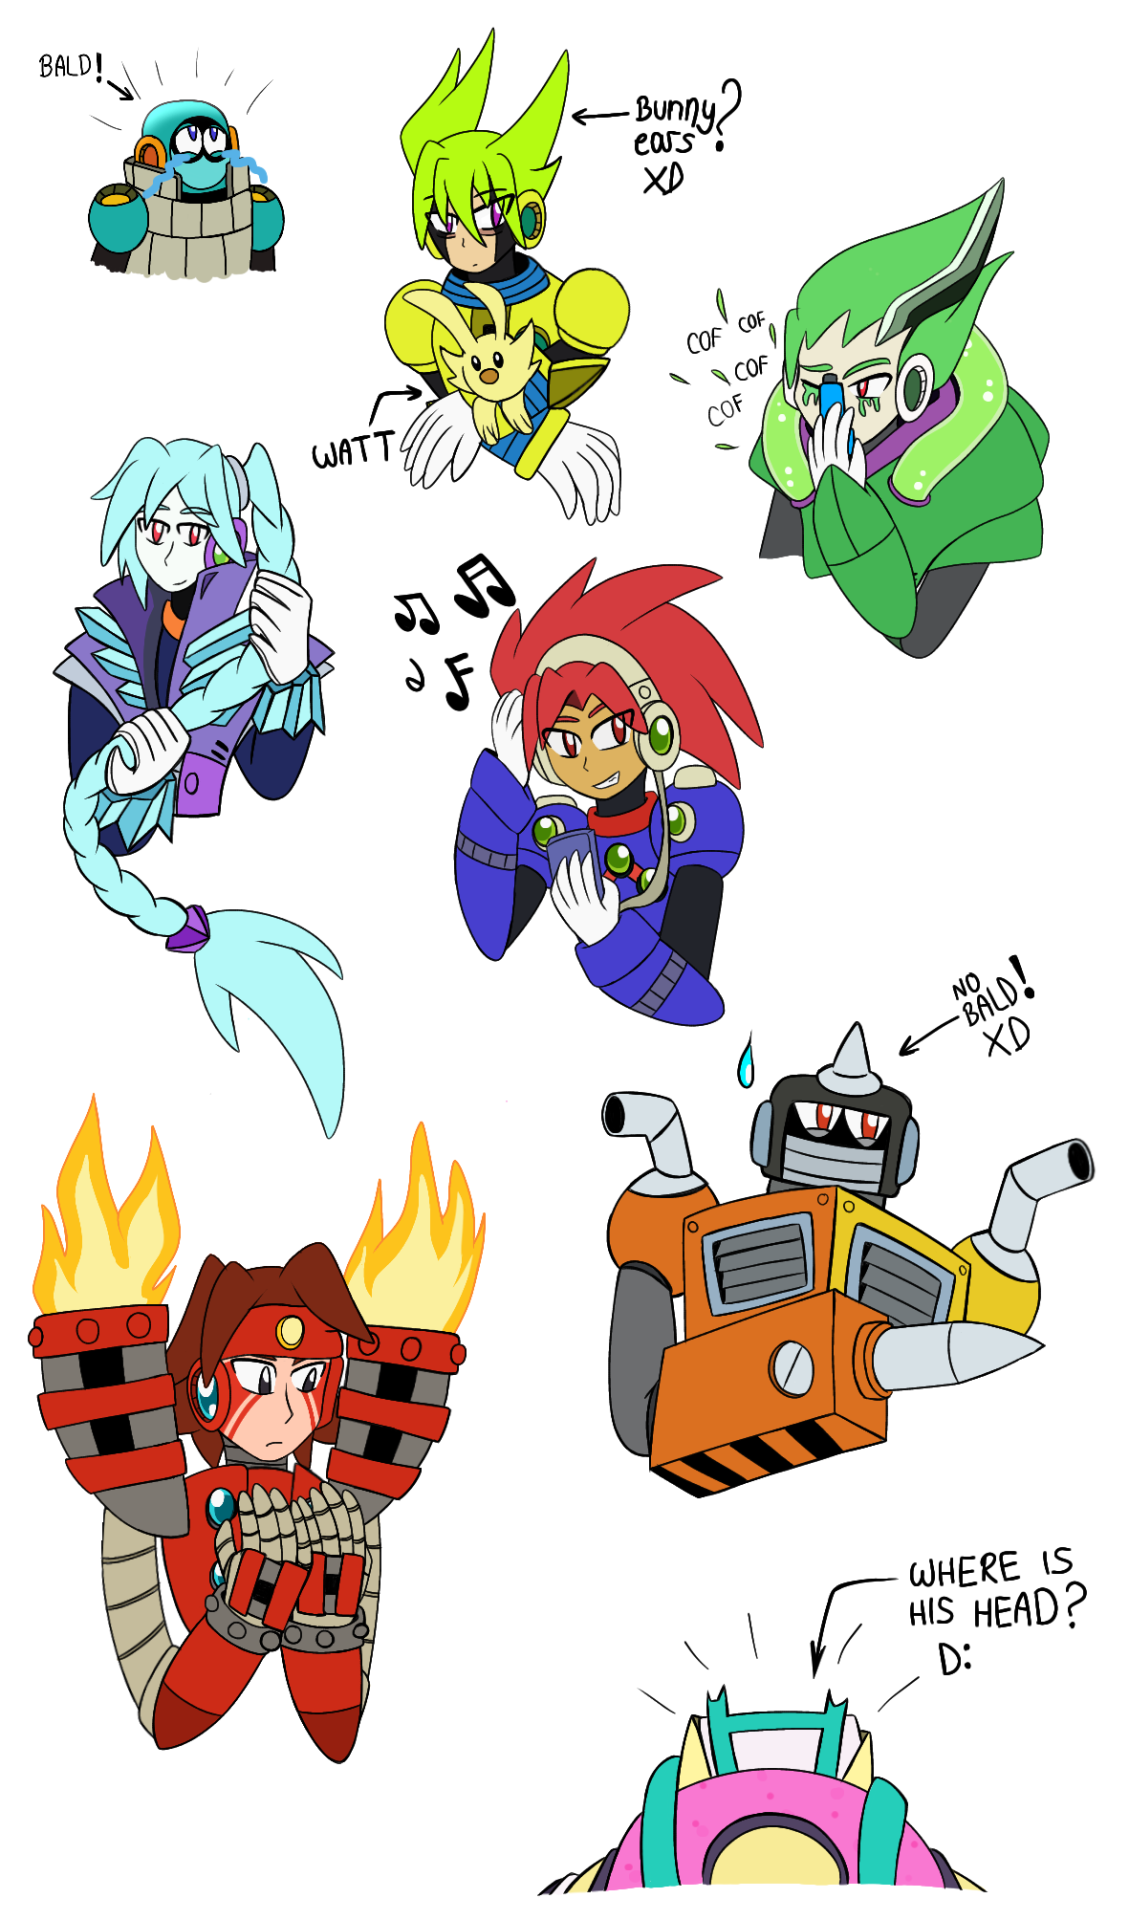 "What if the Robots from Megaman 11 don't have their helmets? (My version)1. Bald Block Man :'v (Based on this thing ""WHERE IS MY BLOCKY-Y-Y?!"")   2. Bunny Fuse Man 🐰3. Acid Man with asthma :v4. Blast Man with headphones 🎶5. Fabulous Tundra Man ❄️6. Karate Man Torch Man? 🔥7. NO BALD Impact Man XD8. Bounce Man without head? 😱—¿Qué sería si los Robots de Megaman 11 no tuvieran sus cascos? (Mi versión)1. Block Man Calvo:v   (Basado en esta cosa ""WHERE IS MY BLOCKY-Y-Y?!"")  2. Conejo Fuse Man 🐰3. Acid Man con asma :v4. Blast Man con audífonos🎶5. Fabulouso Tundra Man ❄️6. ¿Torch Man Karateka? 🔥7. Impact Man NO CALVO XD8. ¿Bounce Man sin cabeza? 😱 #megaman 11#rockman 11#robot masters#block man#fuse man#acid man#blast man#tundra man#torch man#impact man#bounce man#doddles#sketches#helmetless#without helmet#headcannon"